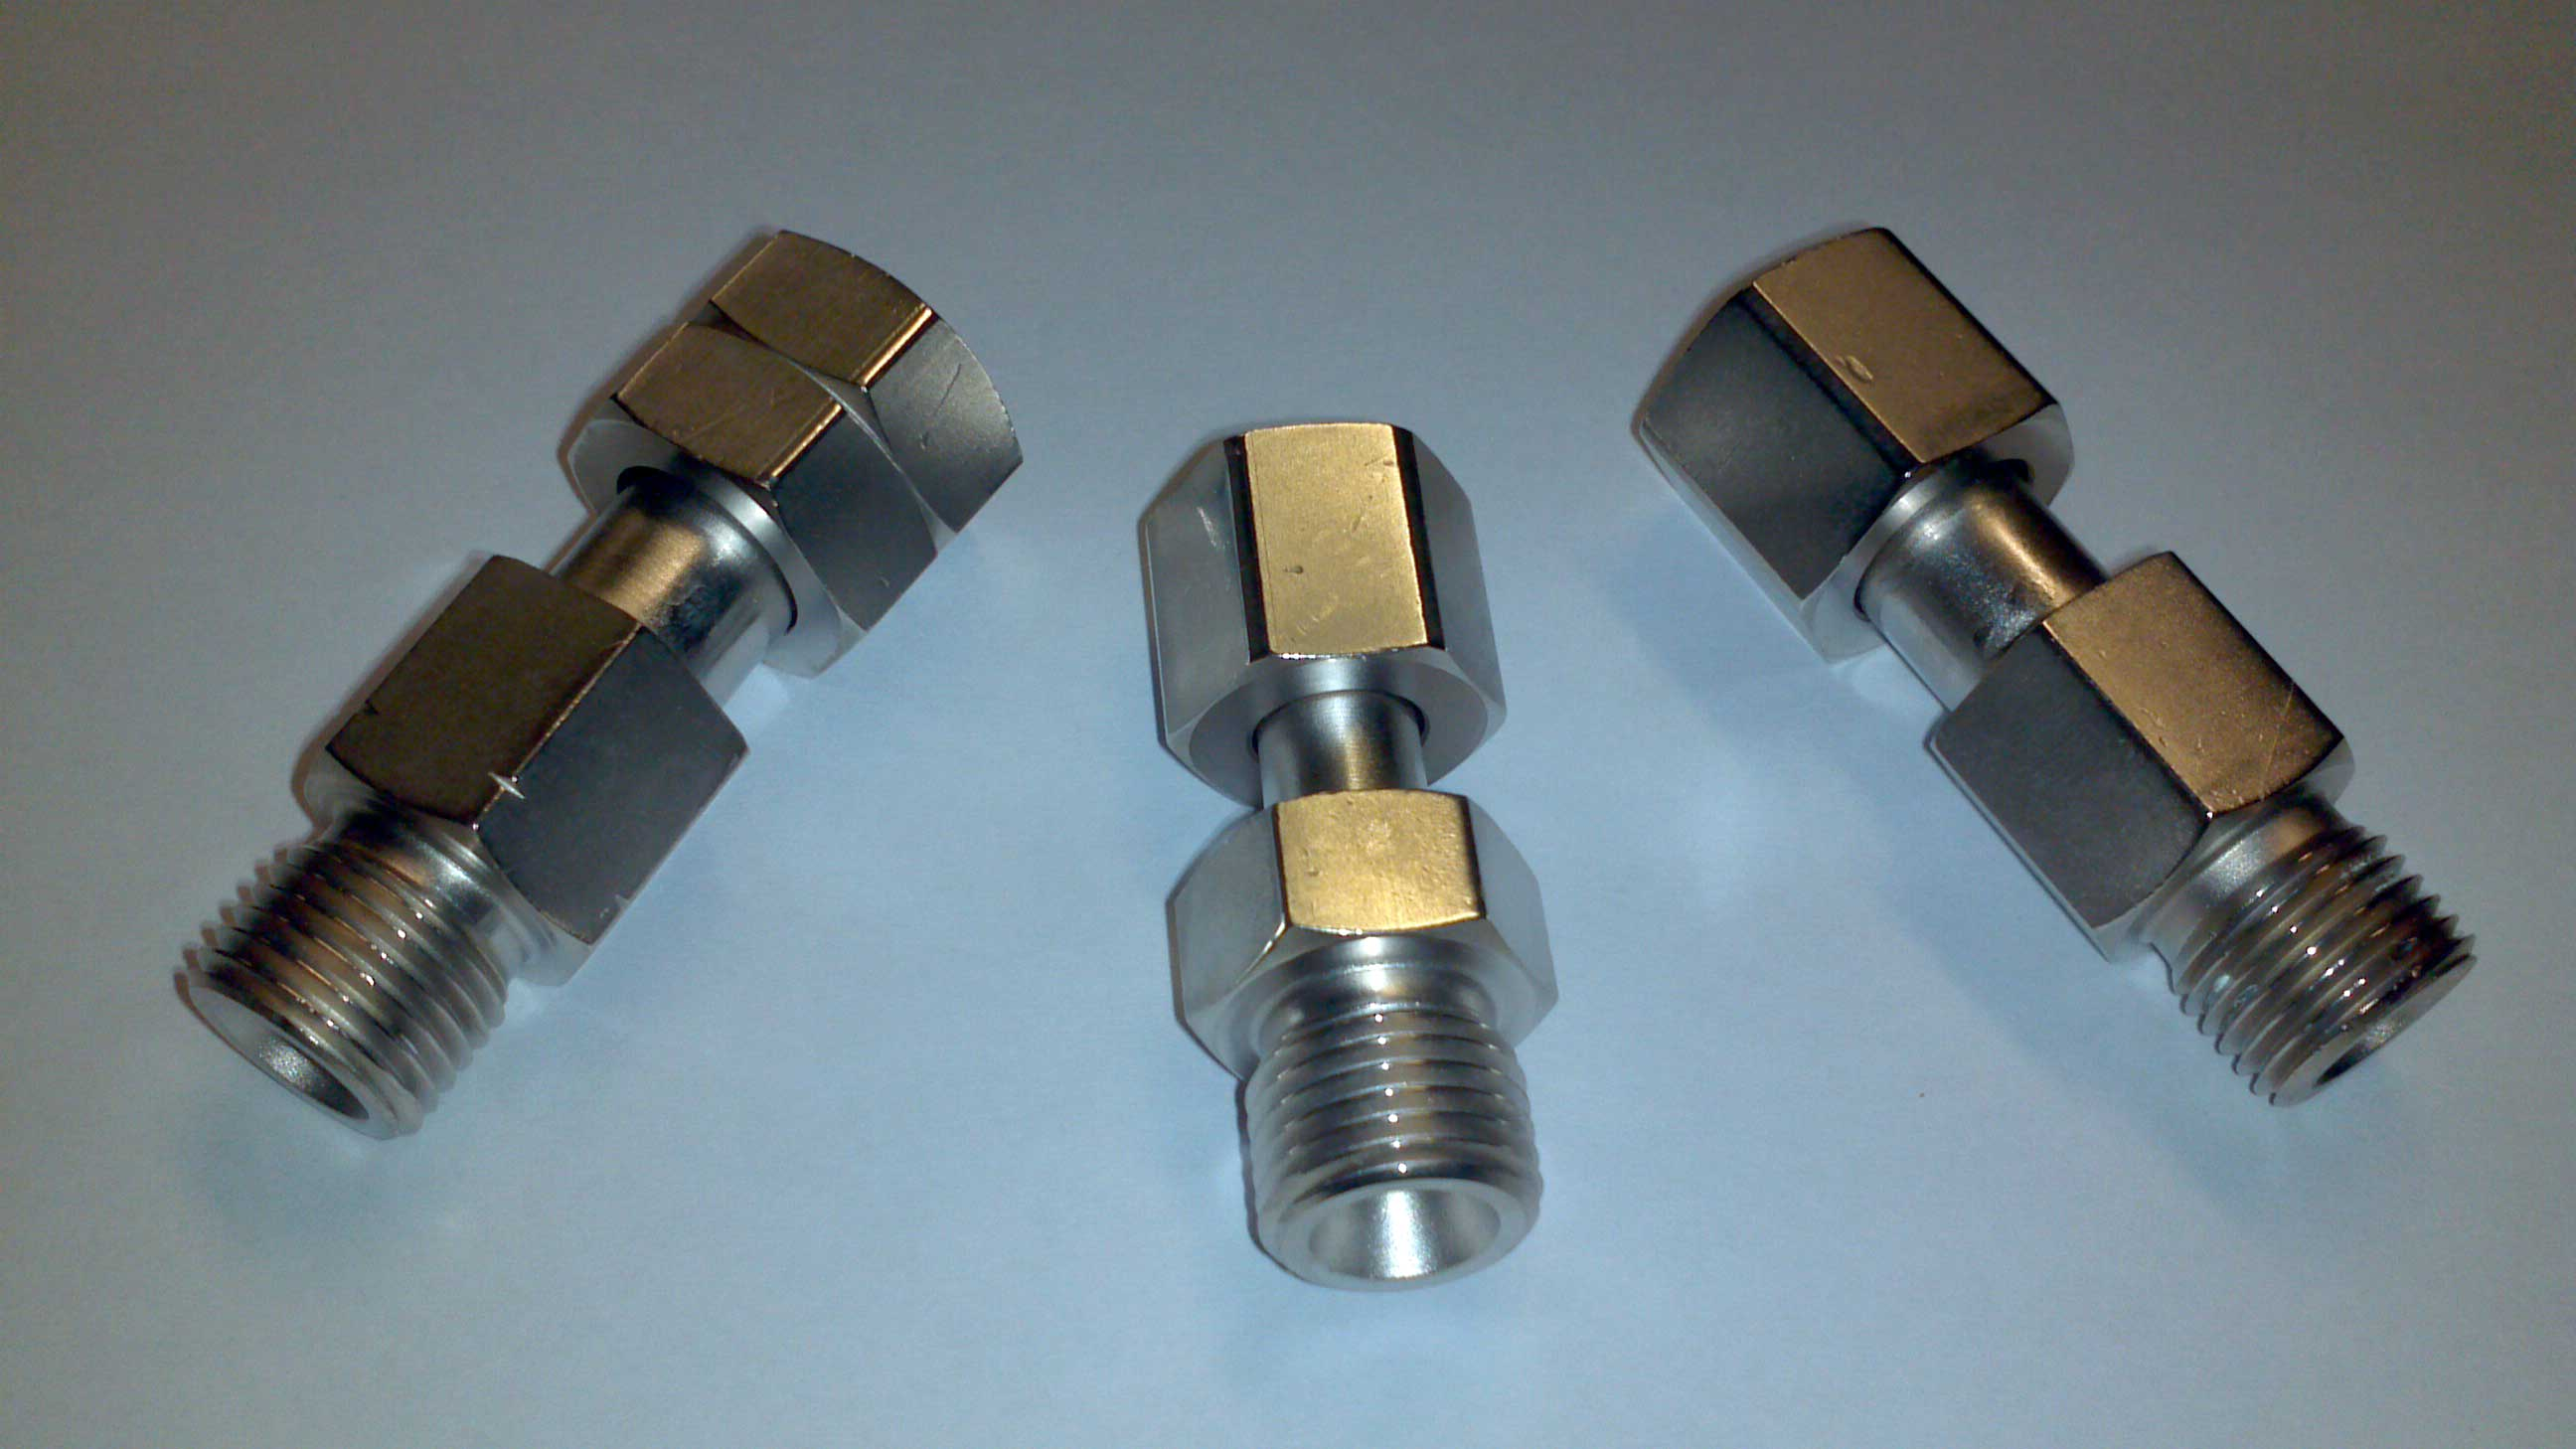 Herbert Arnold B-Fitting Adapters